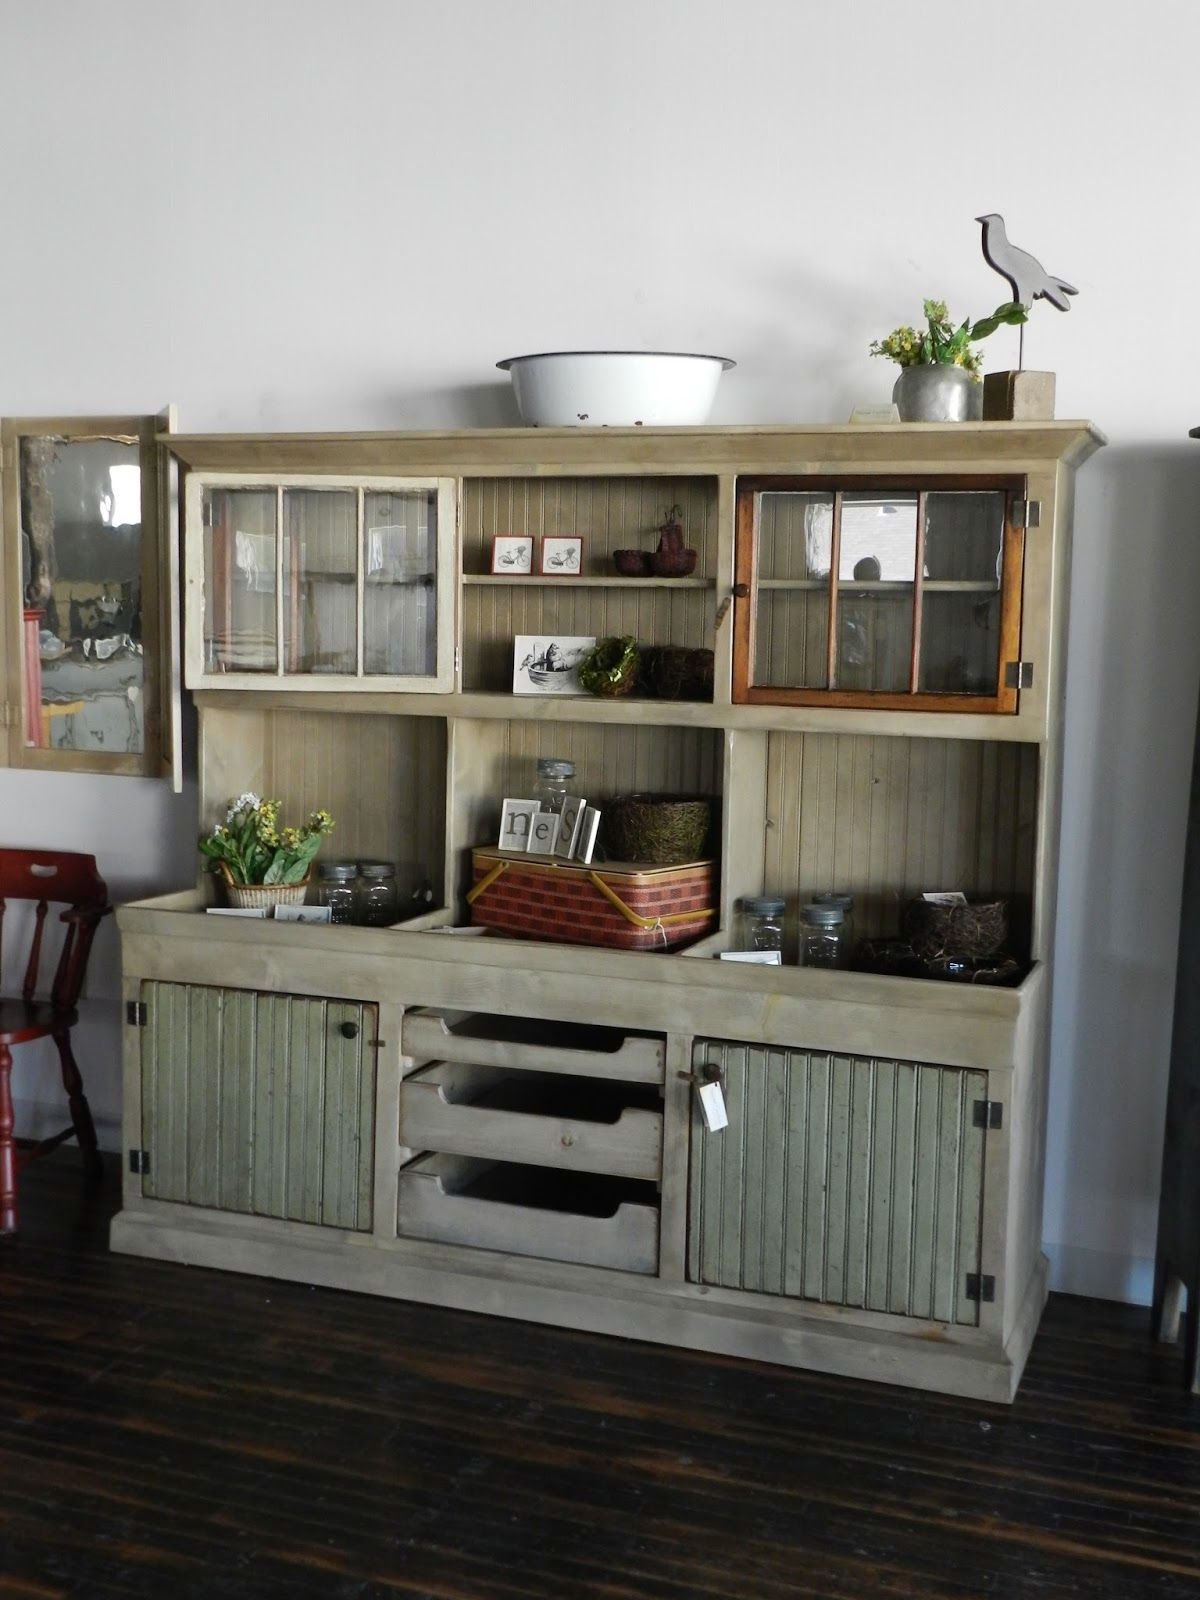 In vogue distressed cabinet with clear glass door top and opened